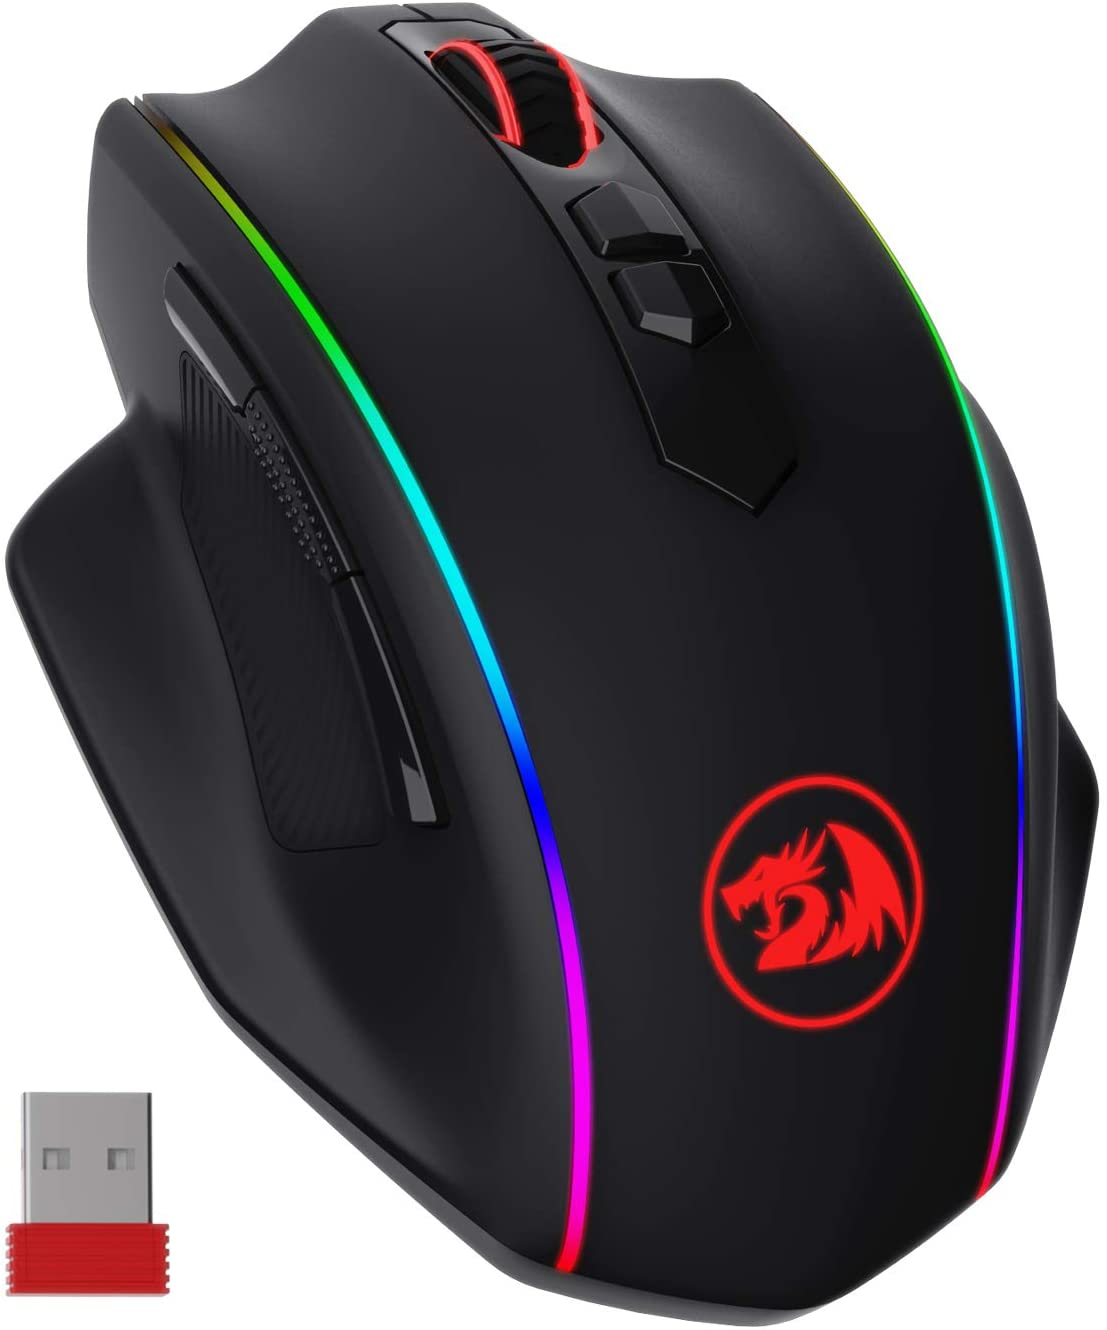 Best Wireless Gaming Mouse in 2021